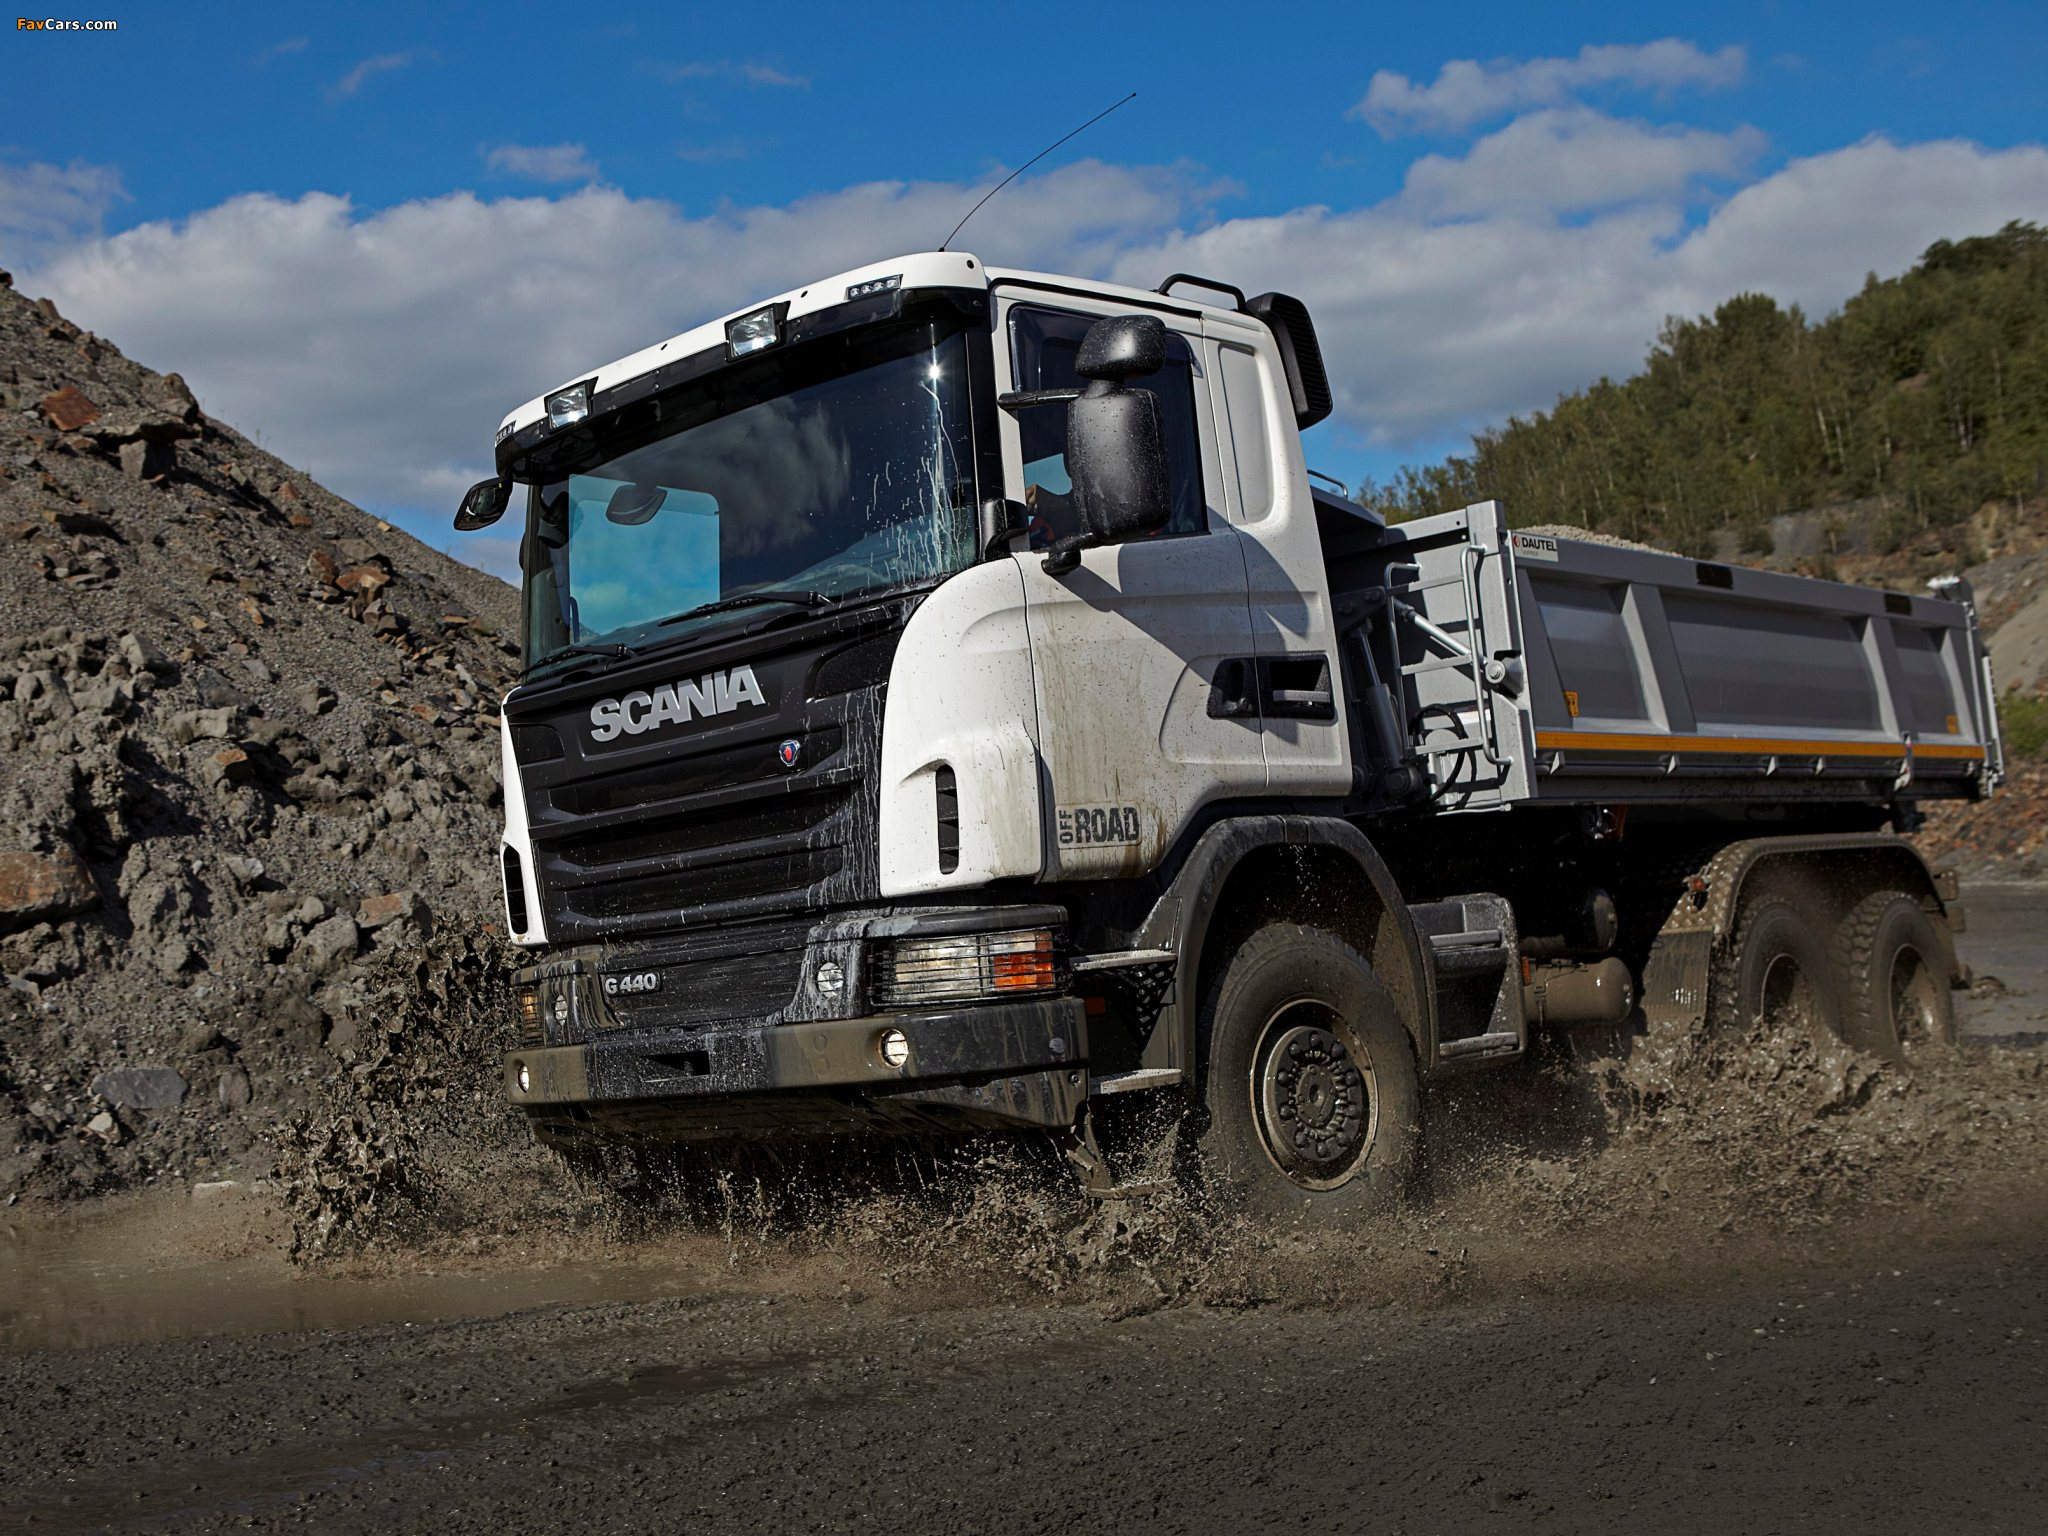 Scania G440 6x6 Tipper Off-Road Package 2011 photos (2048 x 1536)